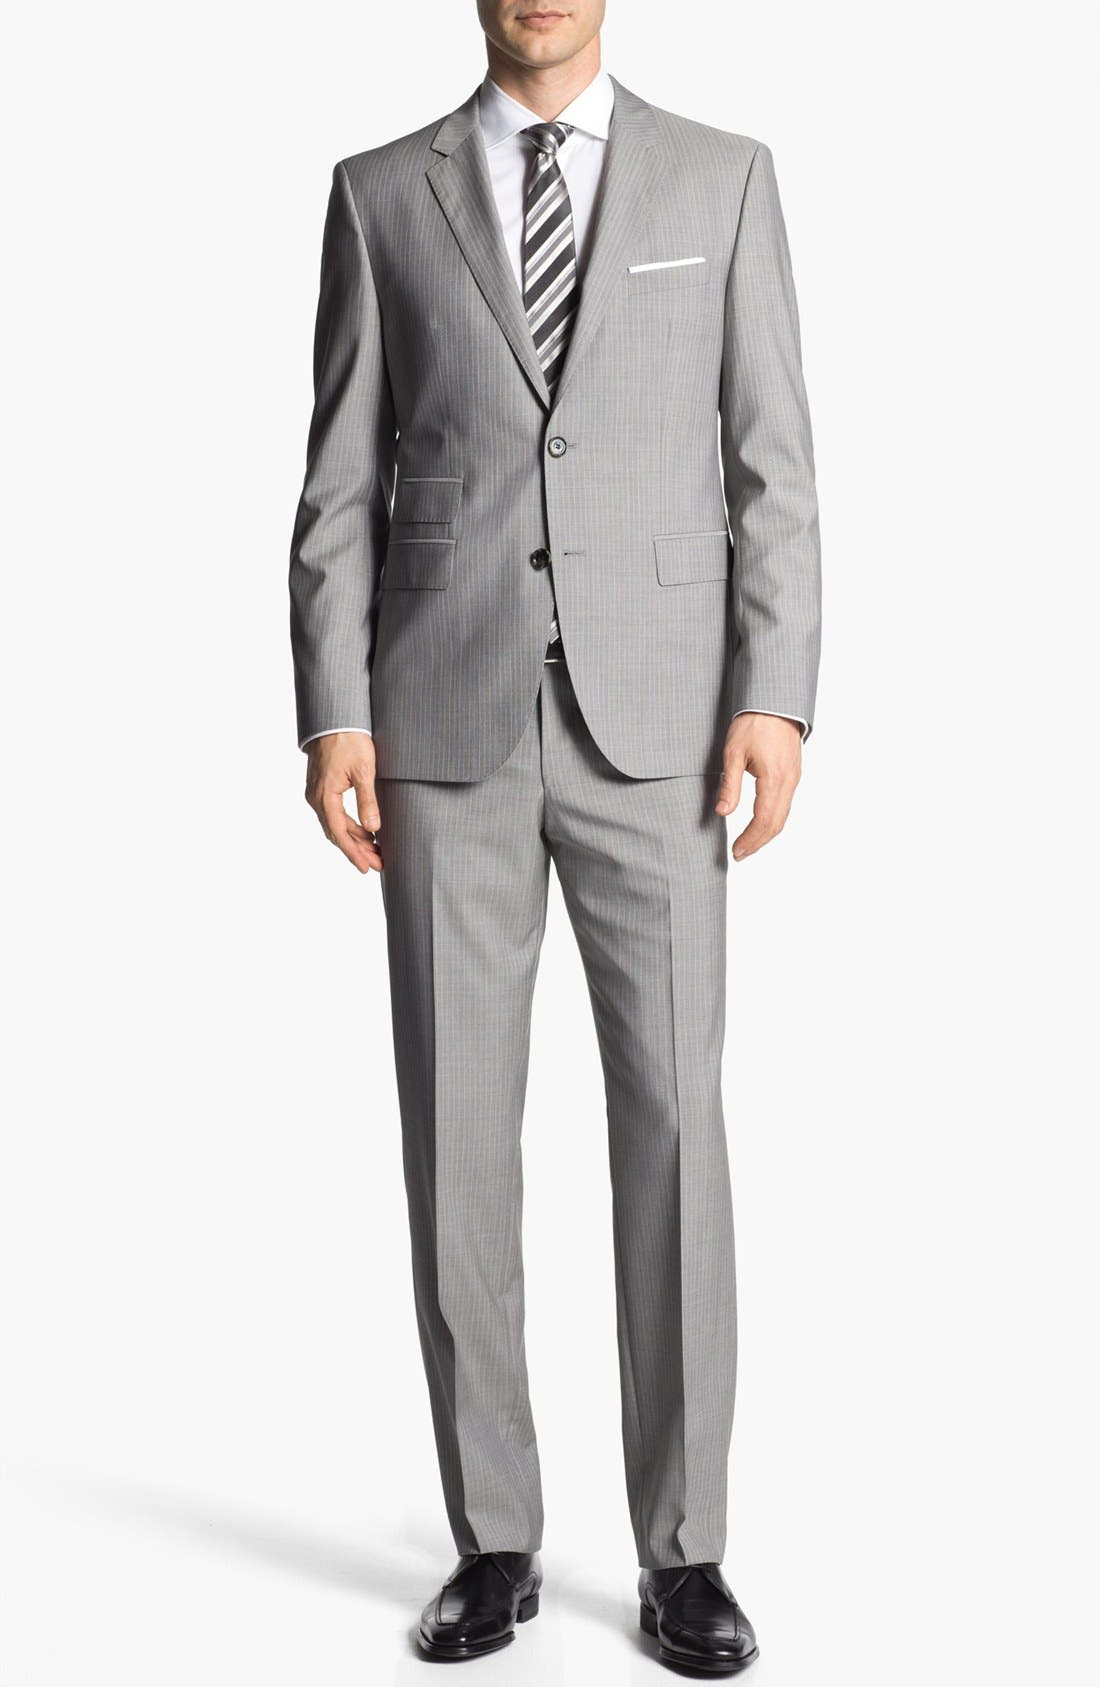 Alternate Image 1 Selected - BOSS HUGO BOSS 'The Sweet/Sharp' Trim Fit Stripe Suit